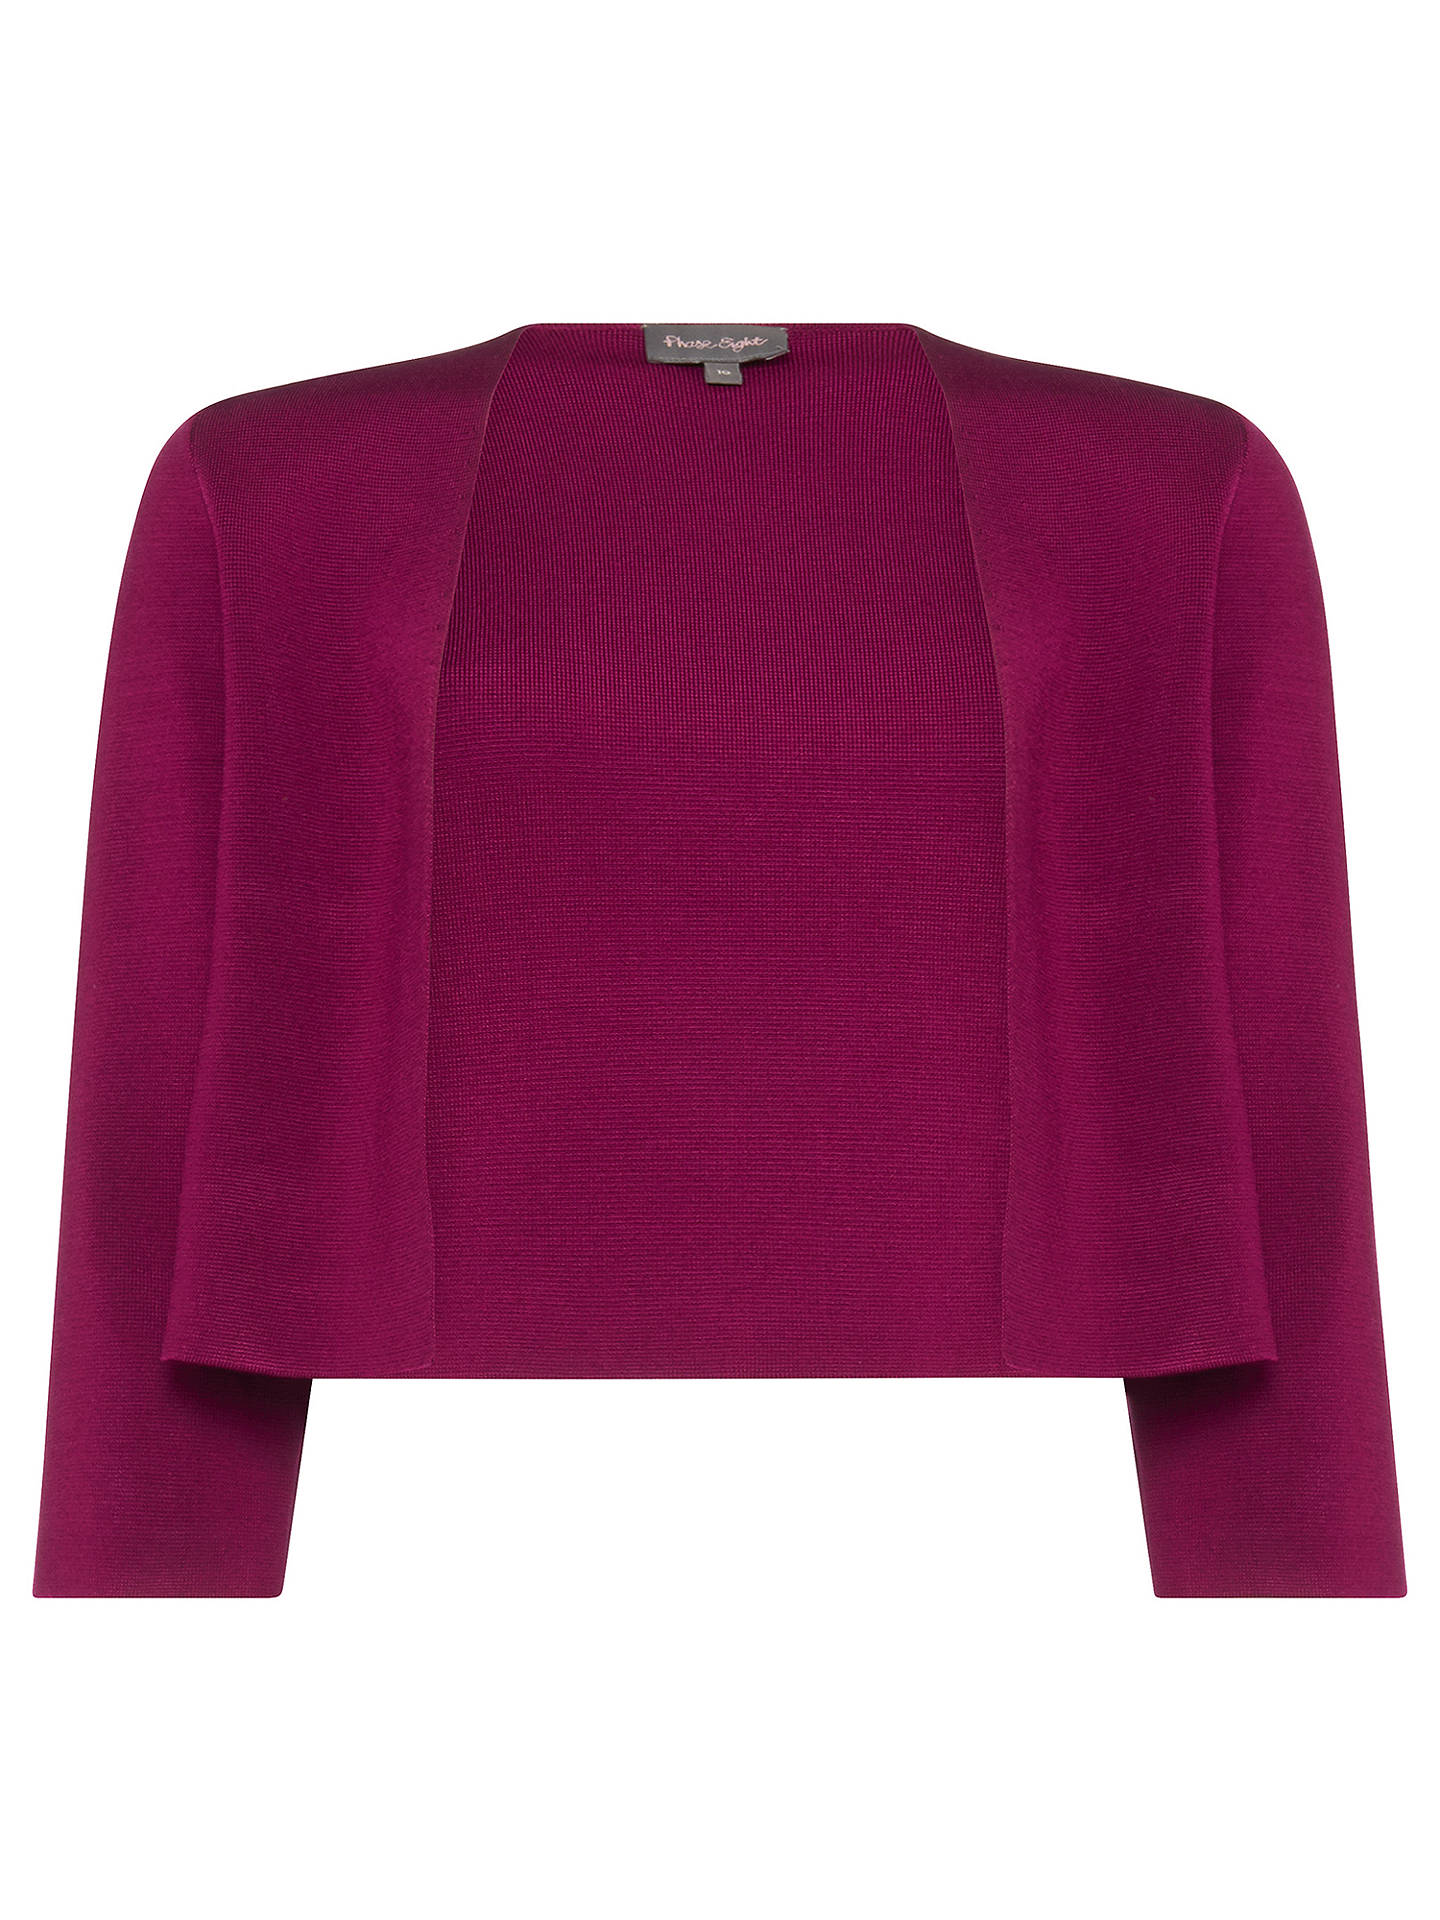 BuyPhase Eight Salma Knitted Jacket, Aubergine, 8 Online at johnlewis.com